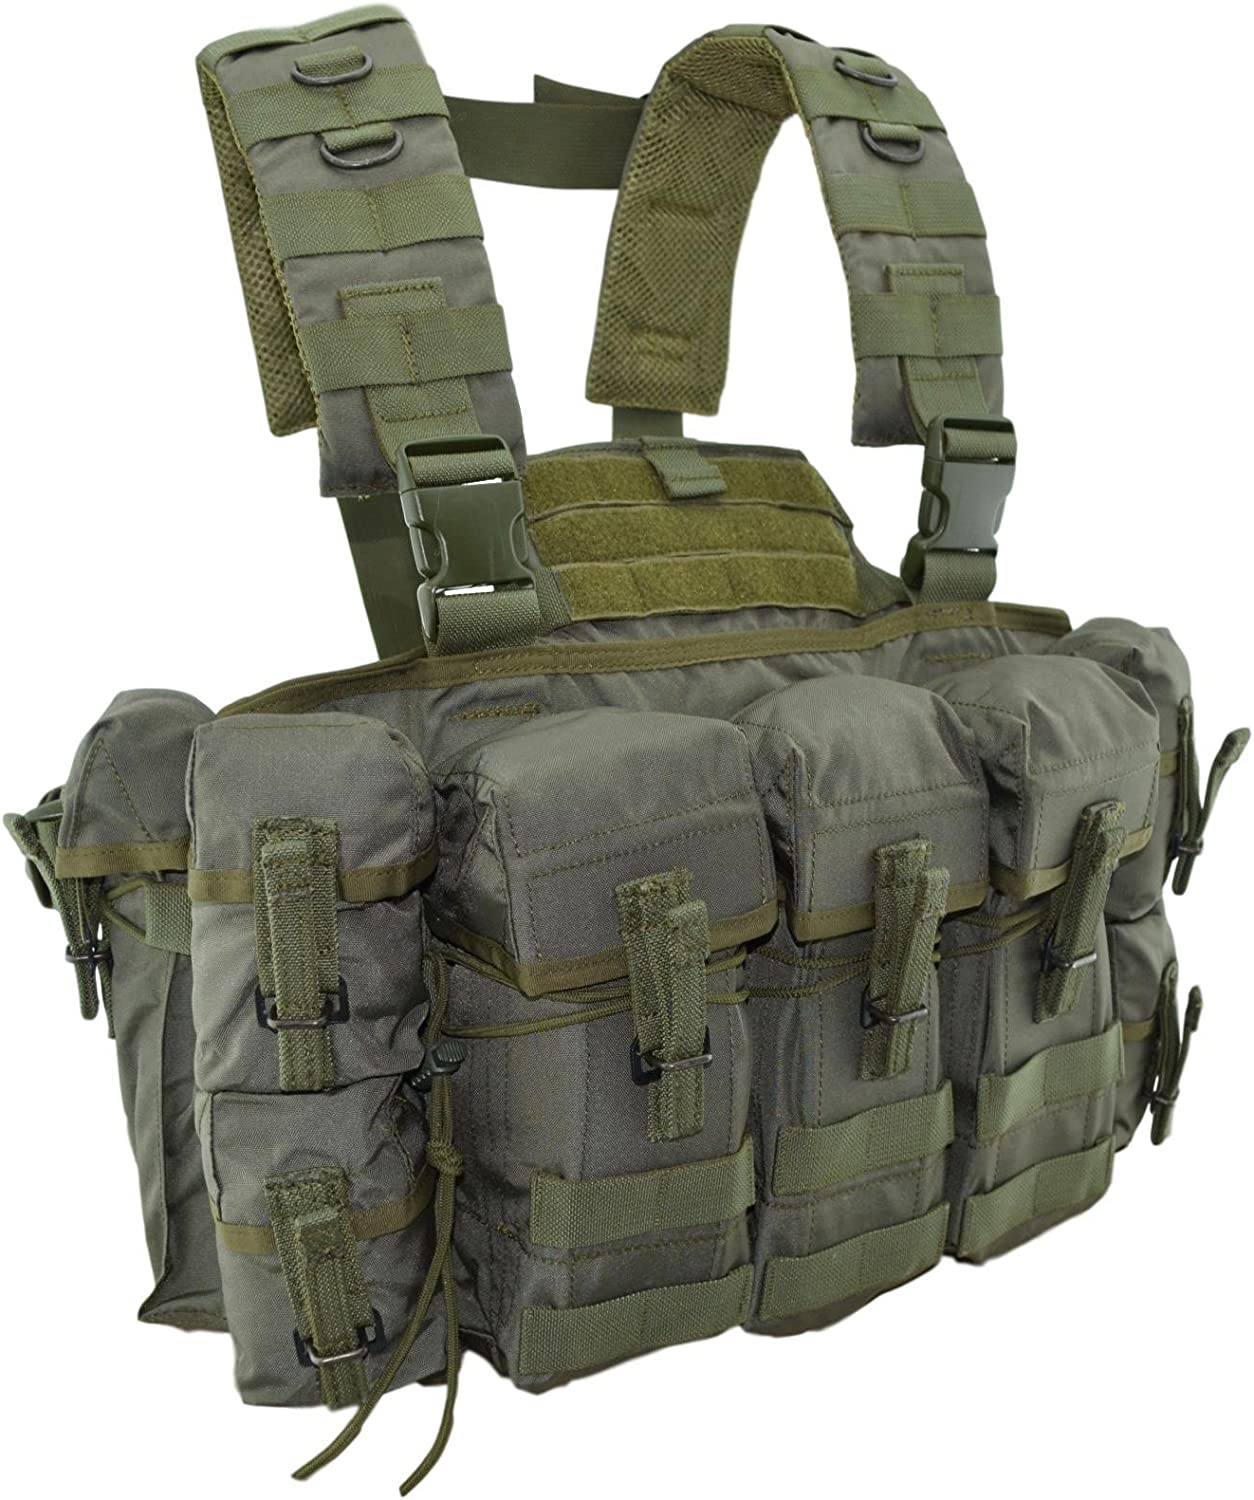 A photo of an olive-colored chest rig, multiple pouches seen.